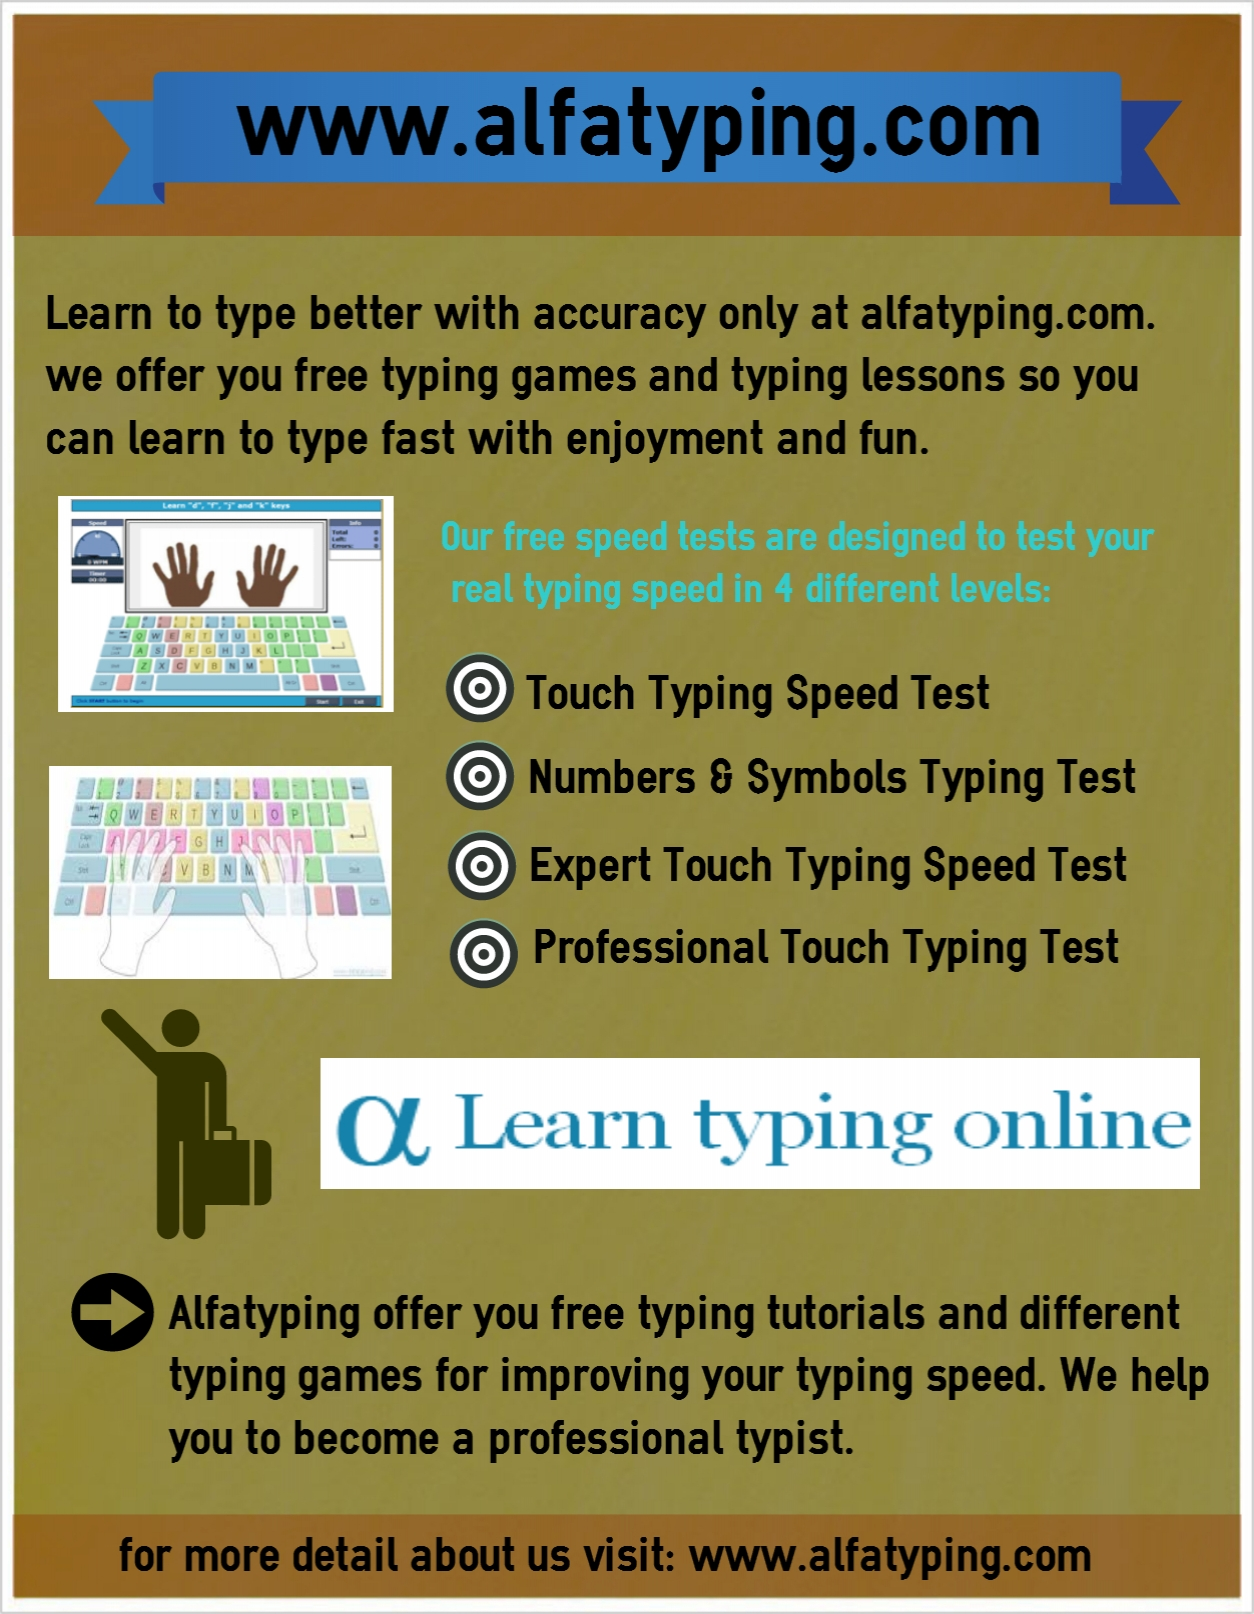 Worksheet Typeonline teach yourself to type online laptuoso mikyu free worksheet